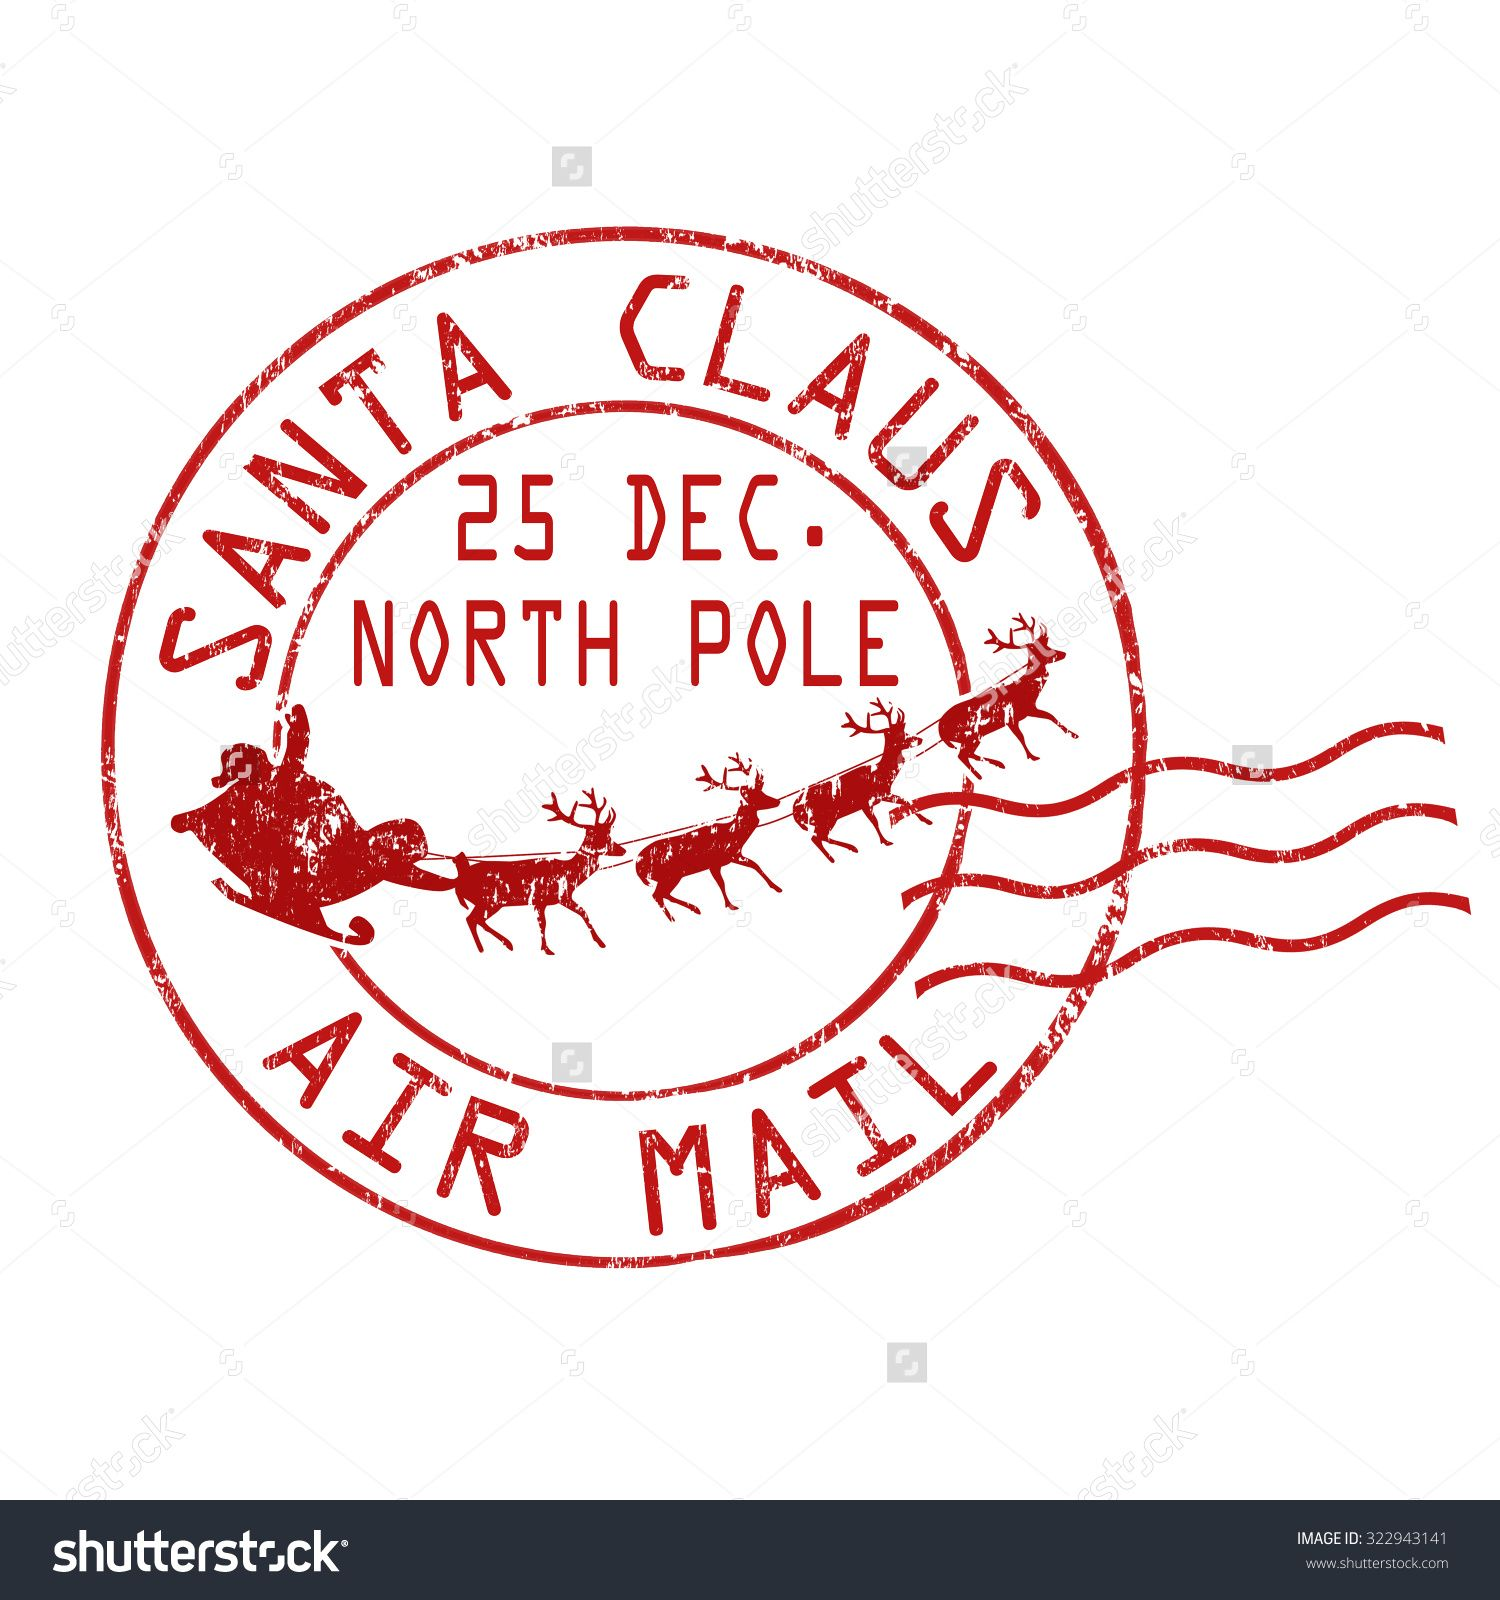 Postmark Stock Photos Images Pictures Mail Stamp Santa Stamp Lettering